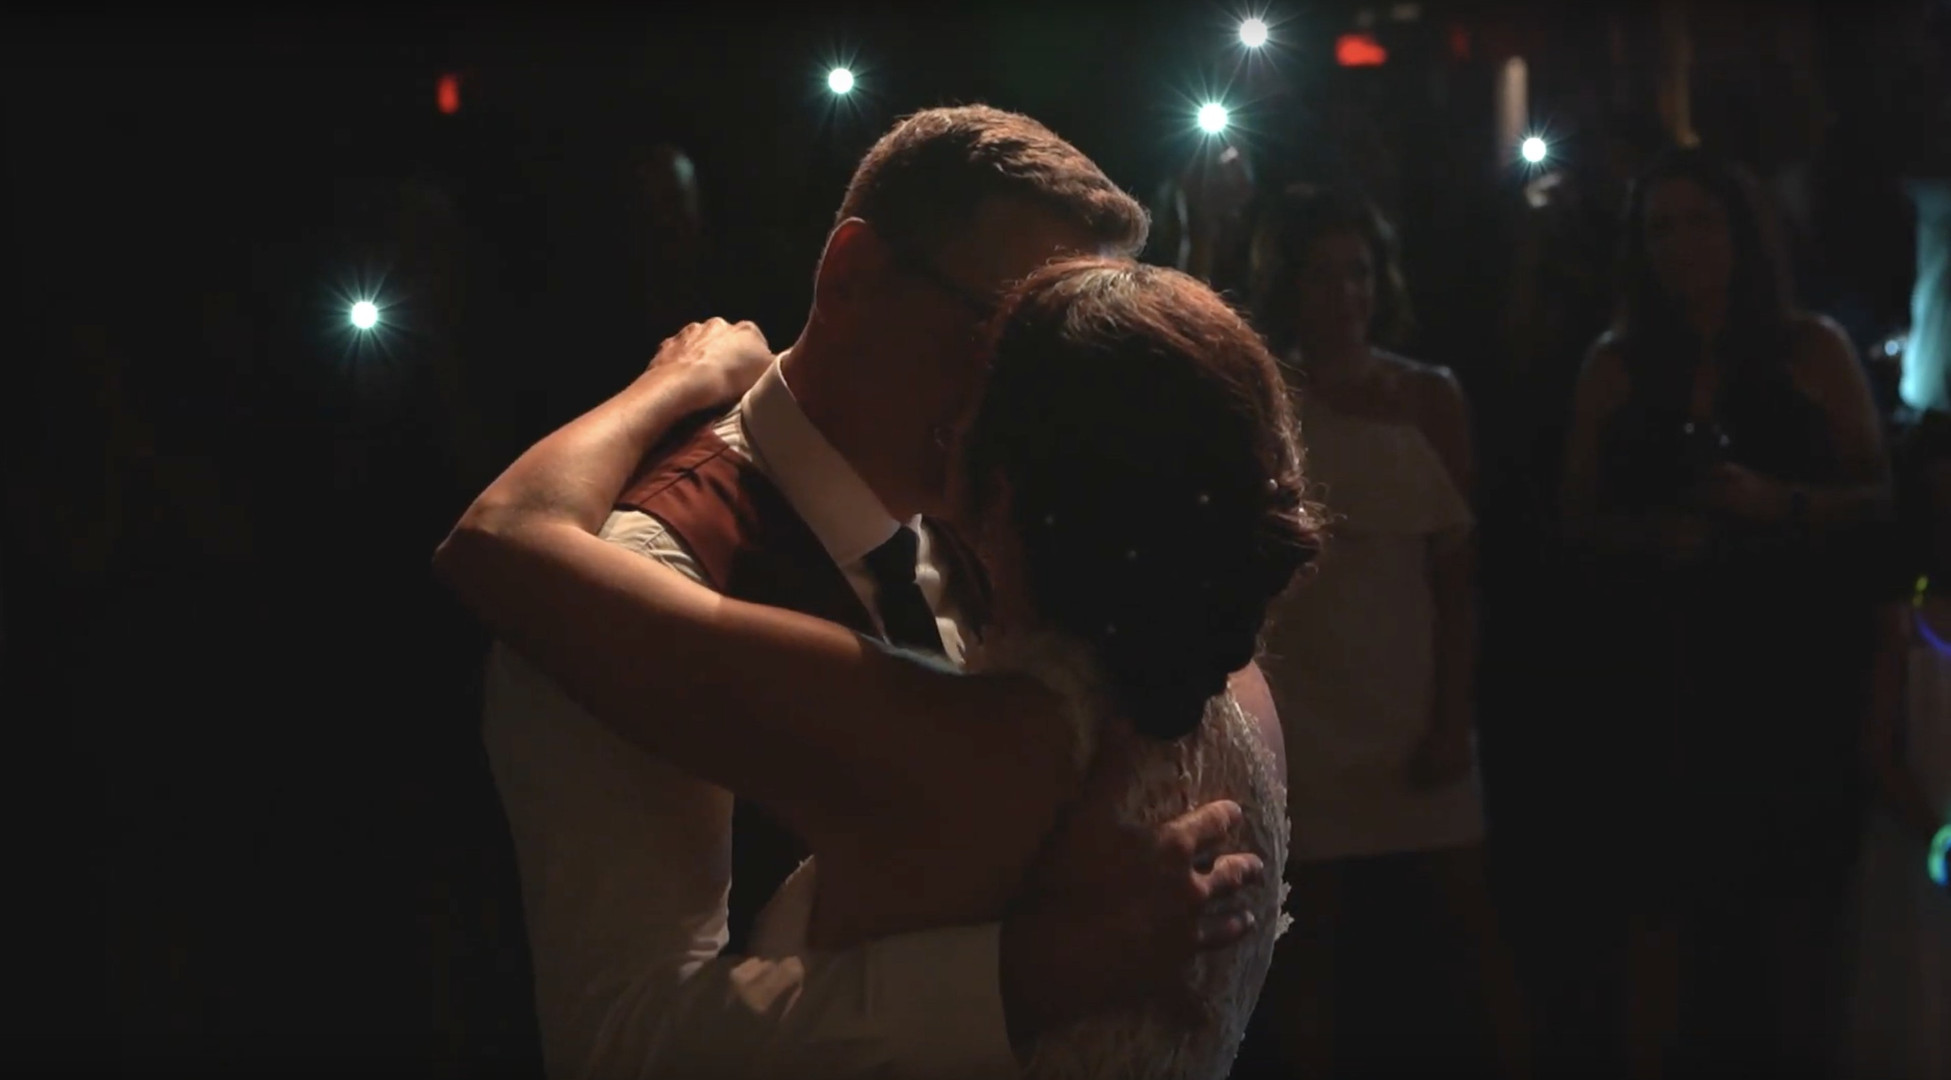 Aura wedding videographer & photographer - Ottawa Gatineau - Montreal - Laurentides - Wedding film - video de mariage - photgraphe de mariage FIRST DANCE - LE RITUEL GATINEAU